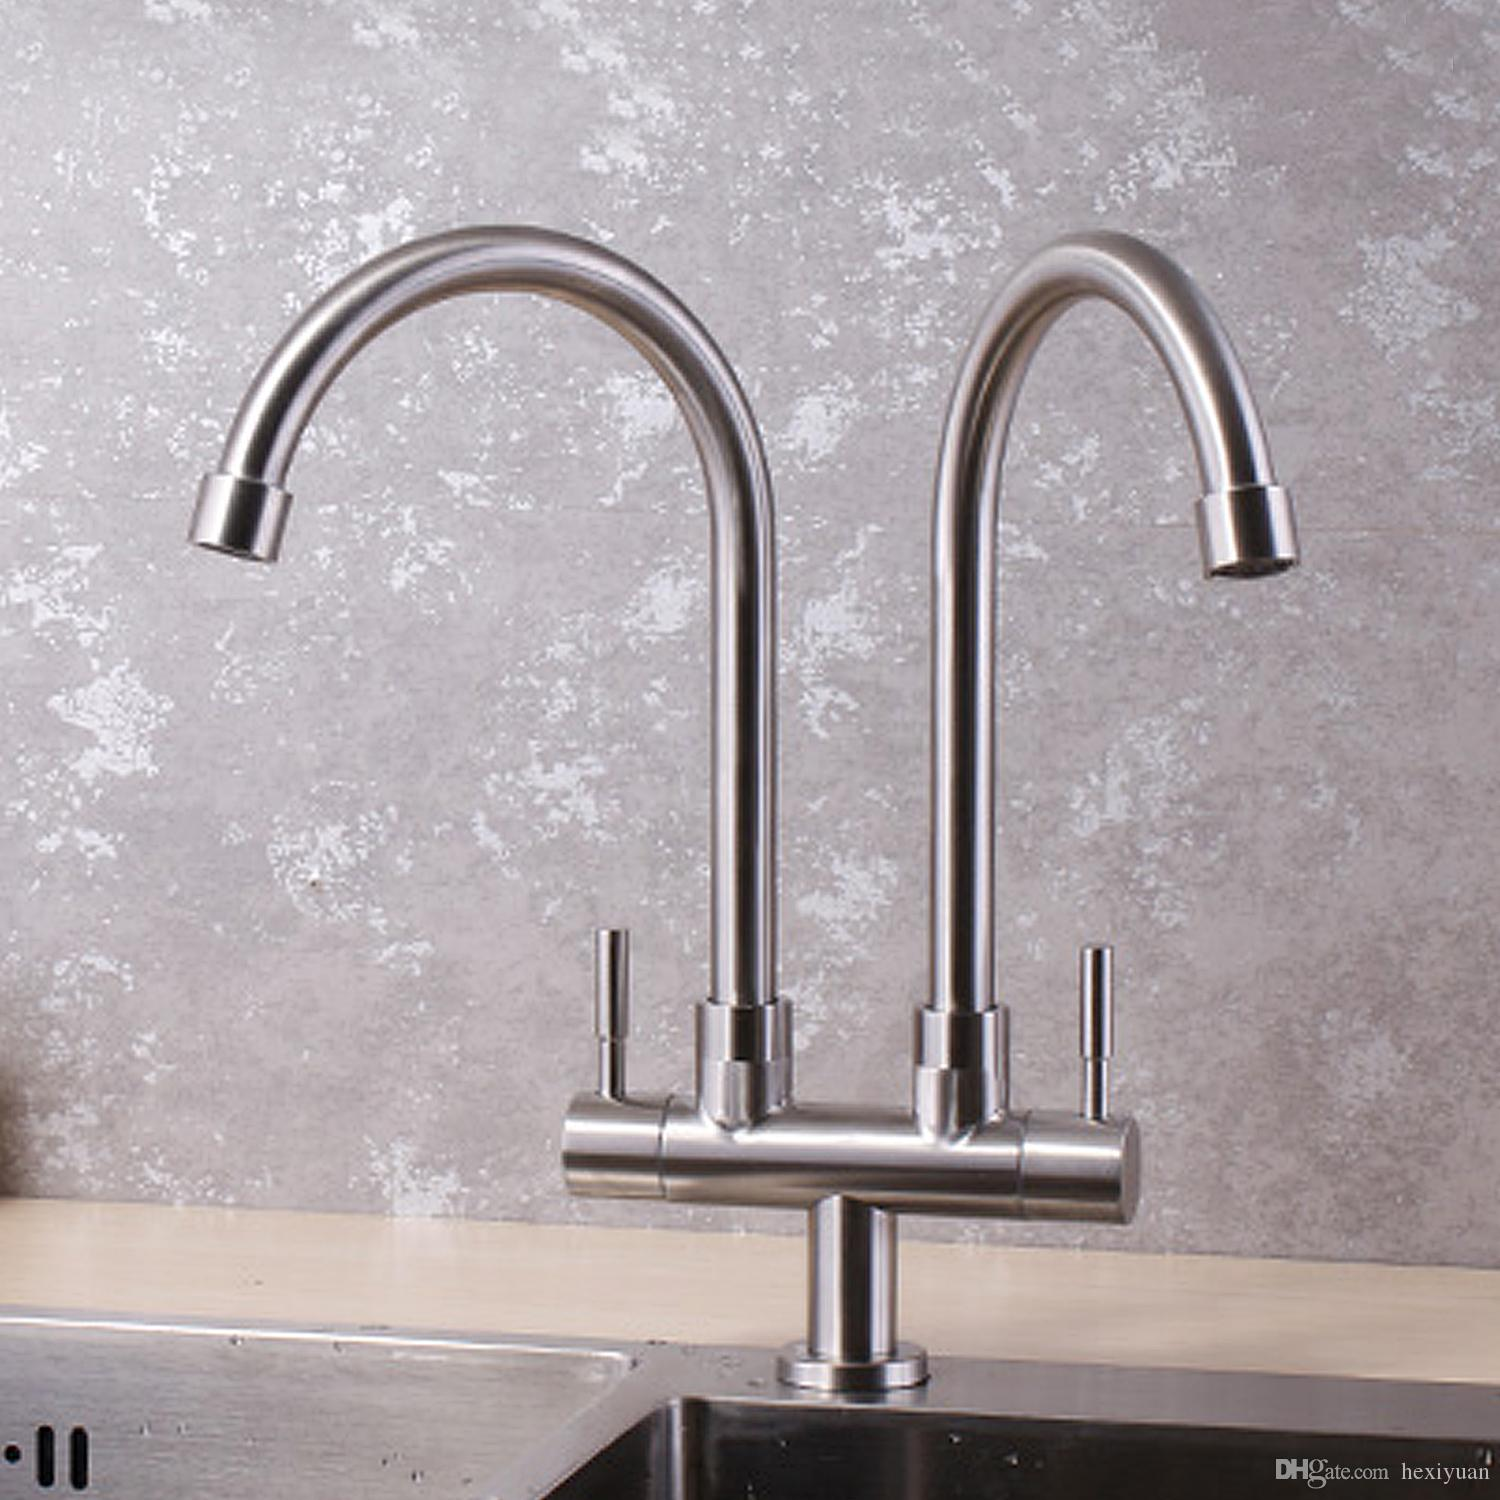 2018 304 stainless steel kitchen faucet single cold wall double tube sink faucet from hexiyuan 56 29 dhgate com